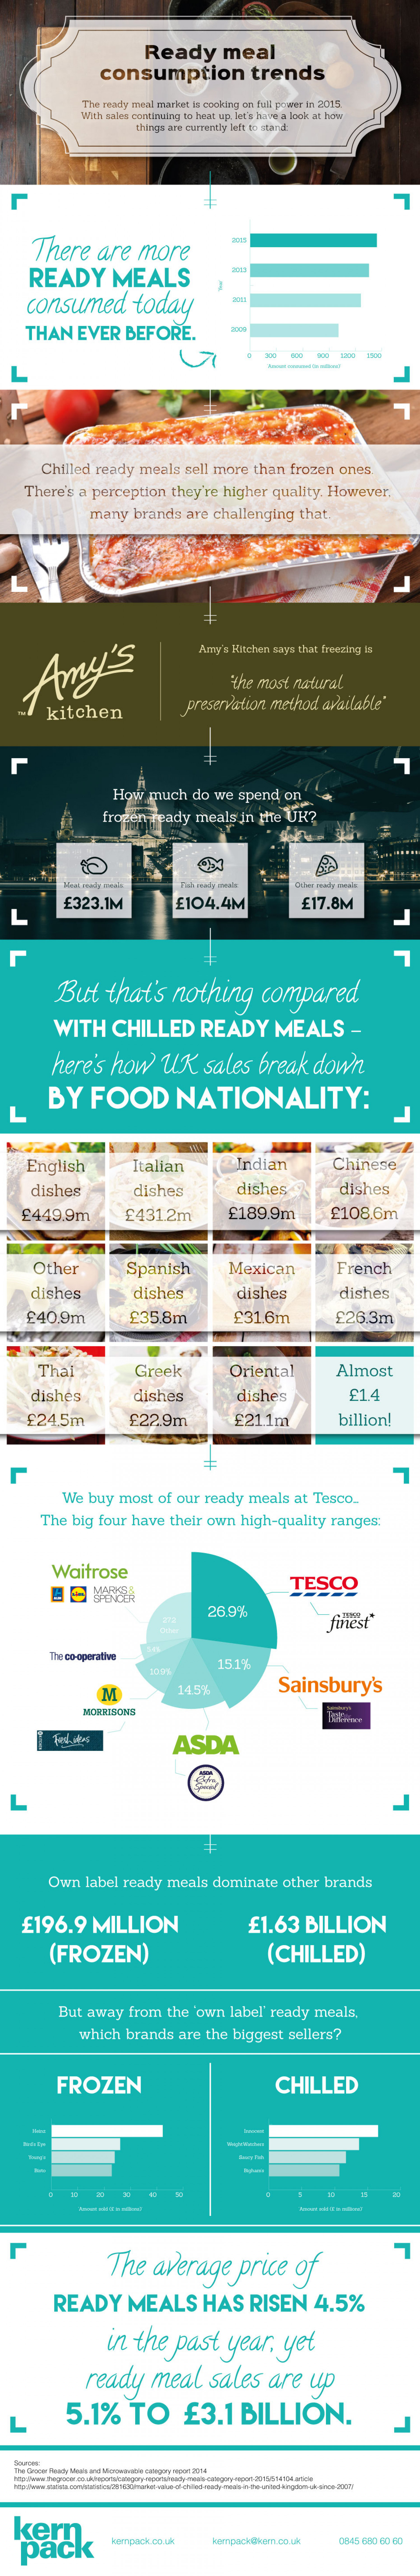 UK Ready Meal Consumption Trends Infographic